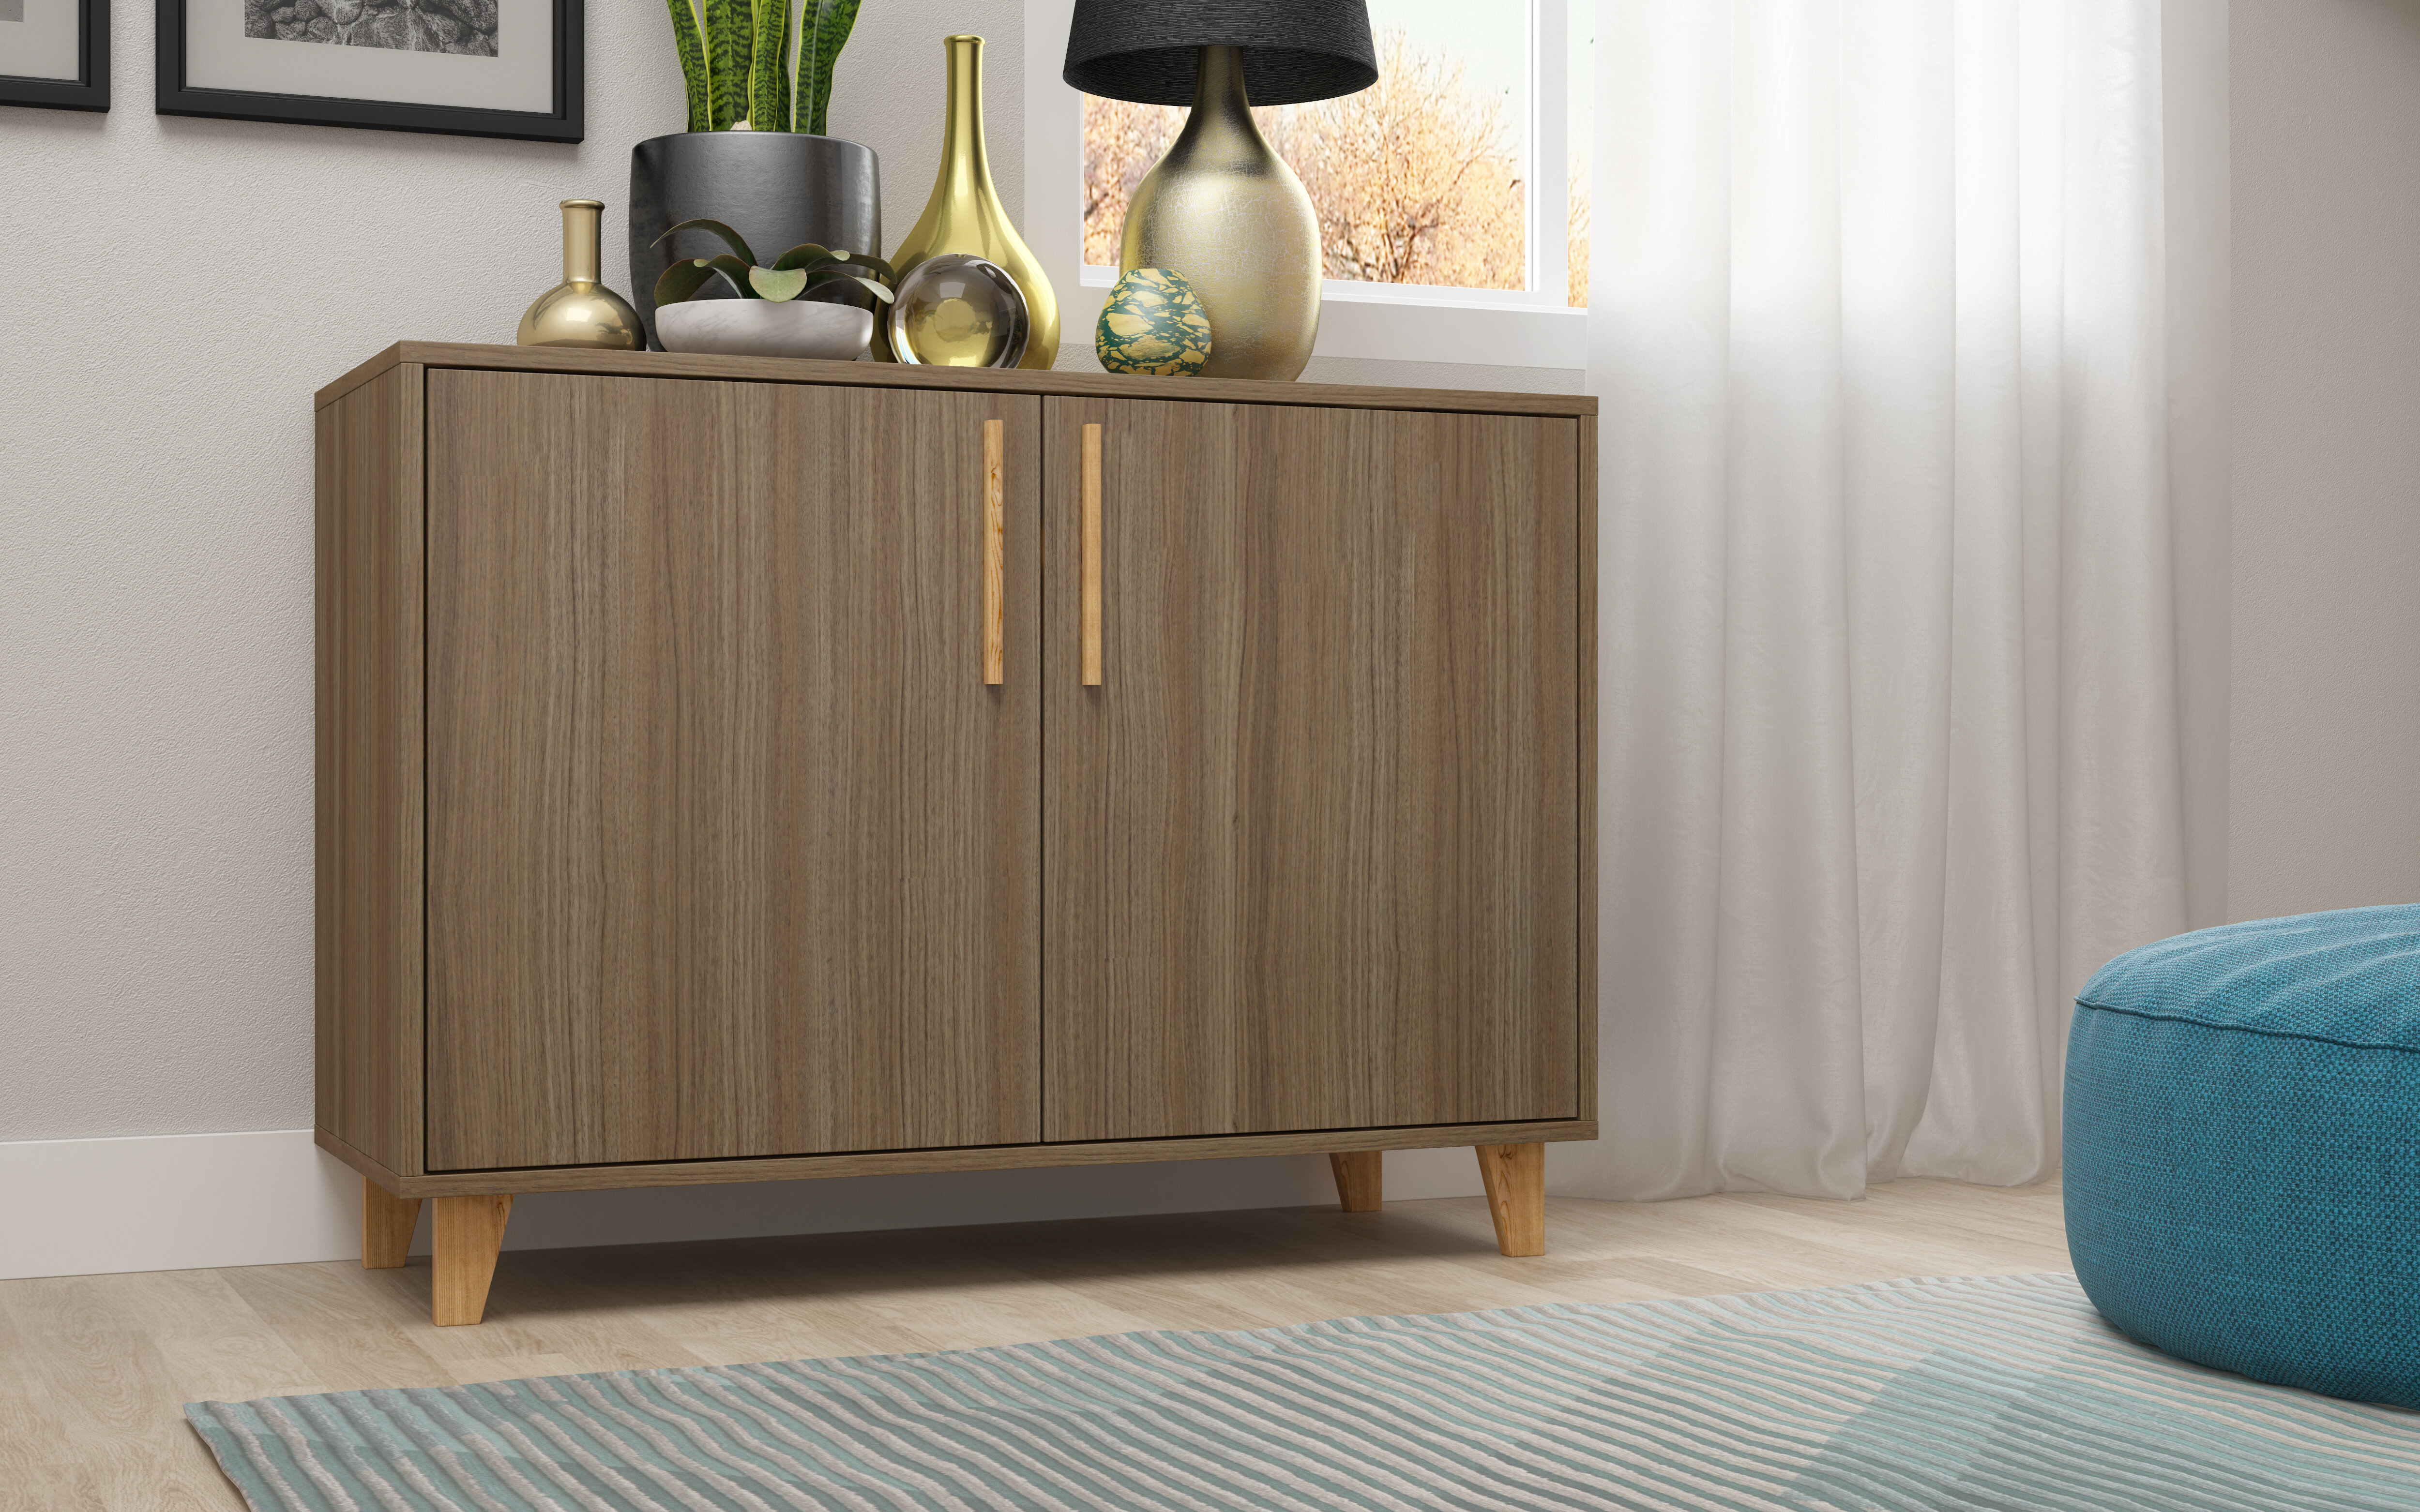 Kennison Mid Century Modern Sideboard pertaining to Mid-Century Brown and Grey Sideboards (Image 14 of 30)